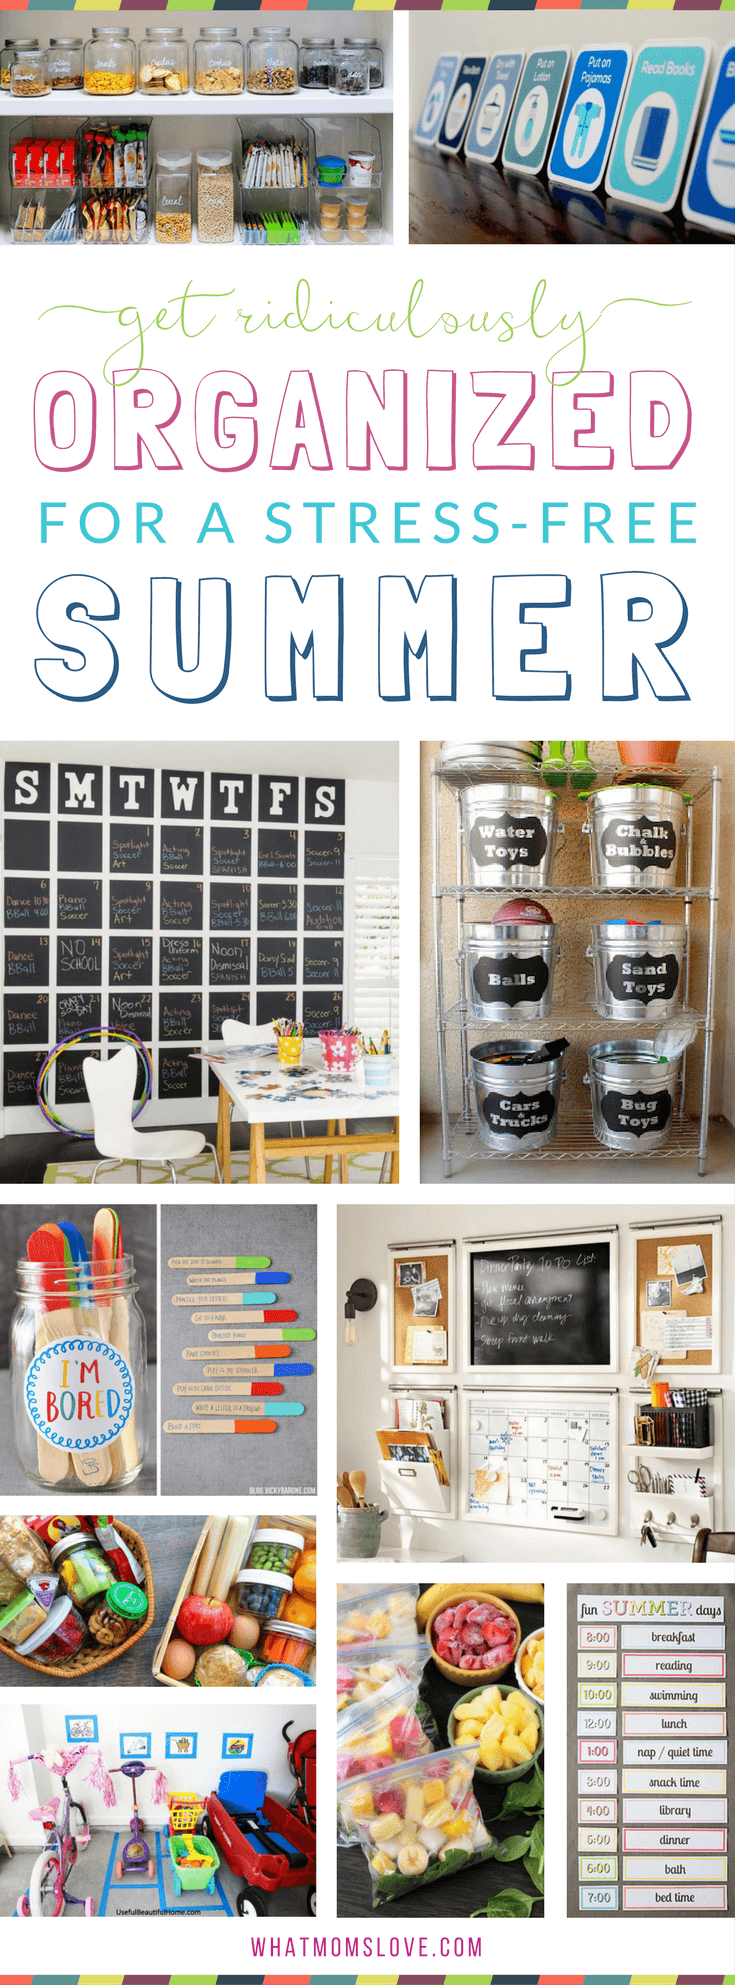 Organizational hacks, tips and tricks for a stress-free summer with your kids | How to organize your family's life for summer with smart ideas including summer schedule, morning and nighttime routine and chore charts, calendar planning, fun things to do when kids get bored (like an %22I'm bored jar%22!), DIY ways to organize your garage, snack prep tips and more!